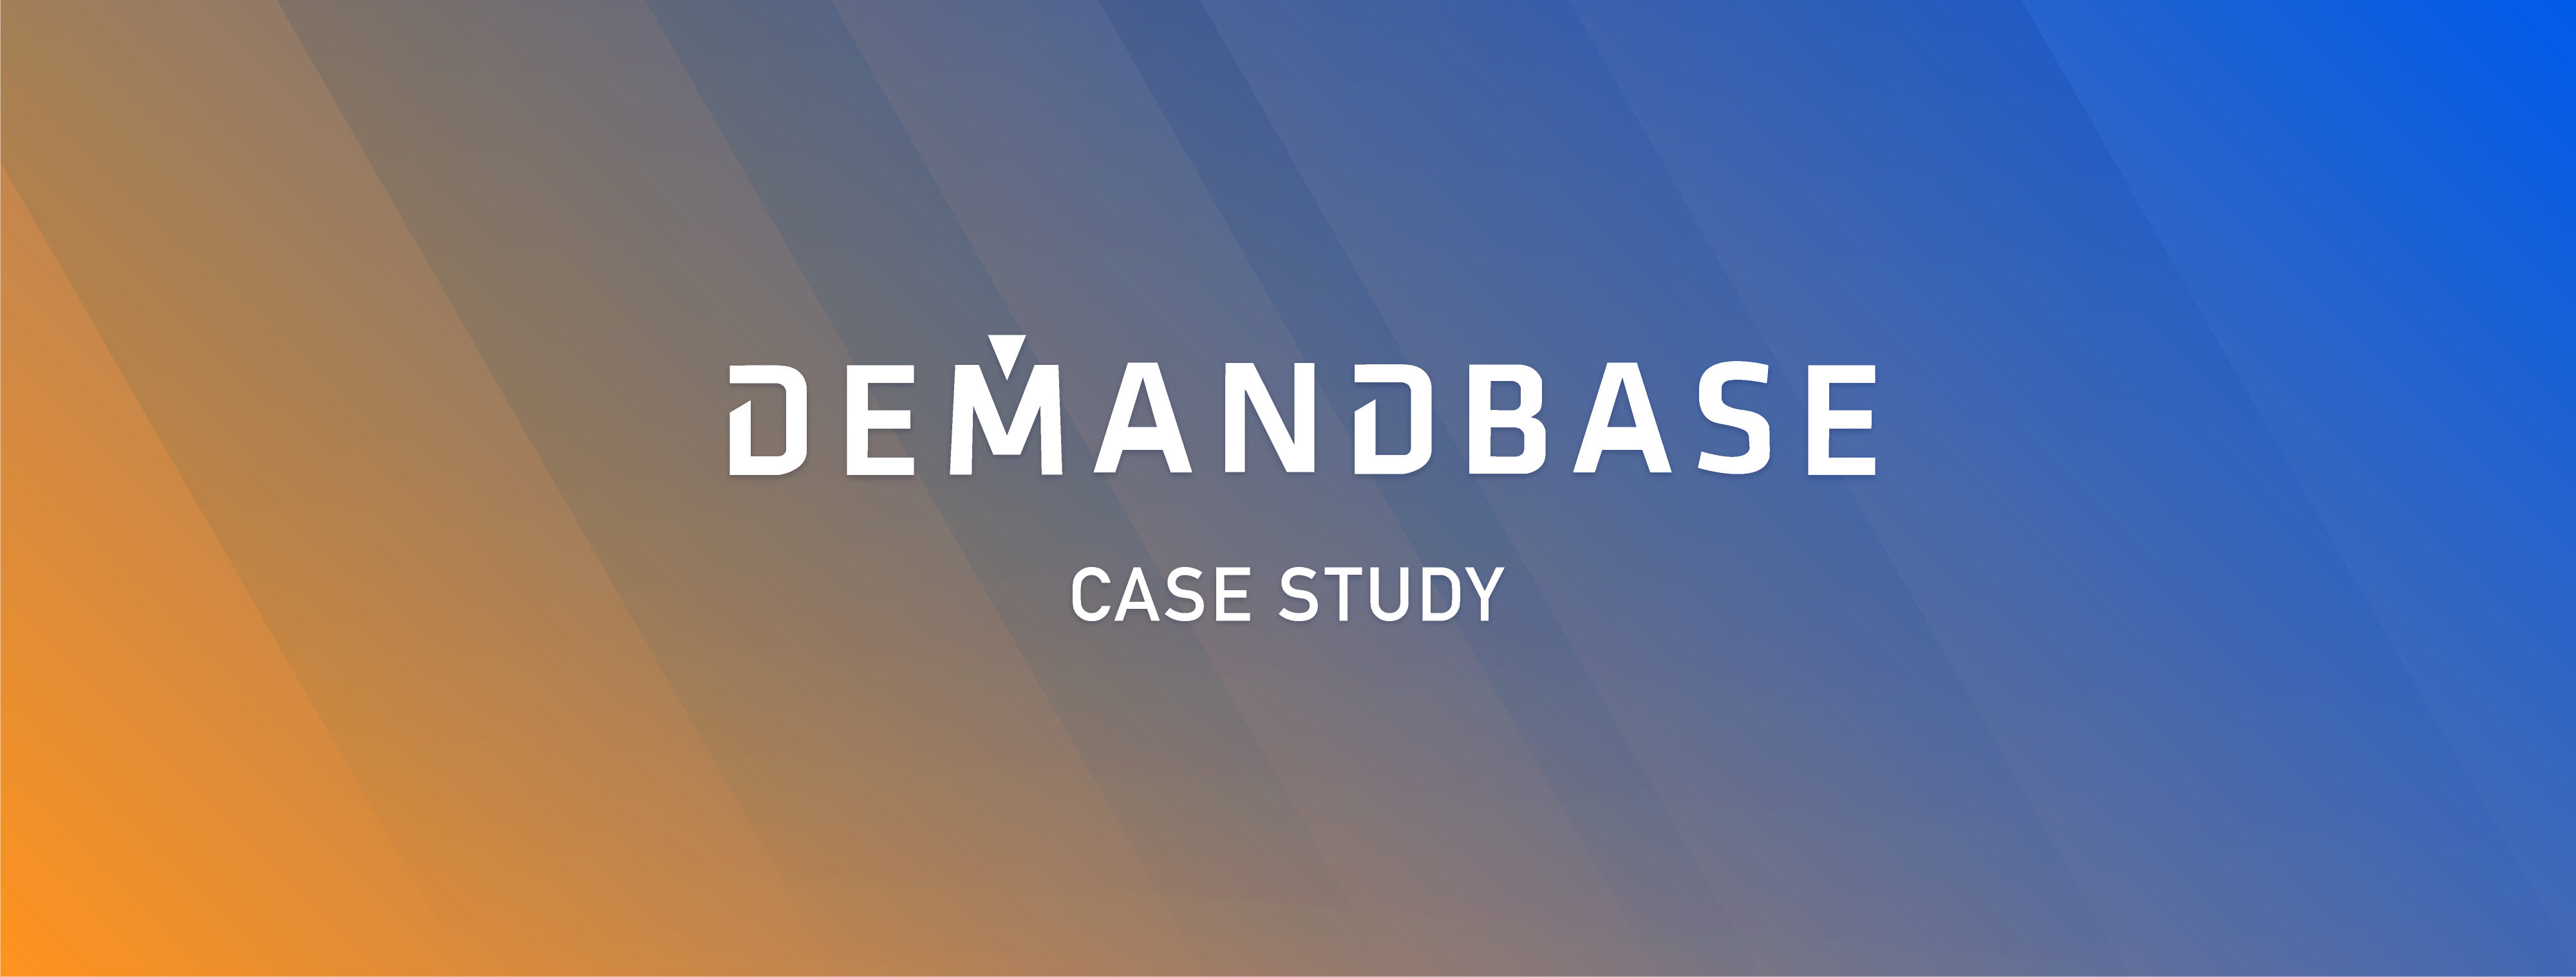 Demandbase goes from 0 to 200k+ monthly Spot hours in one year